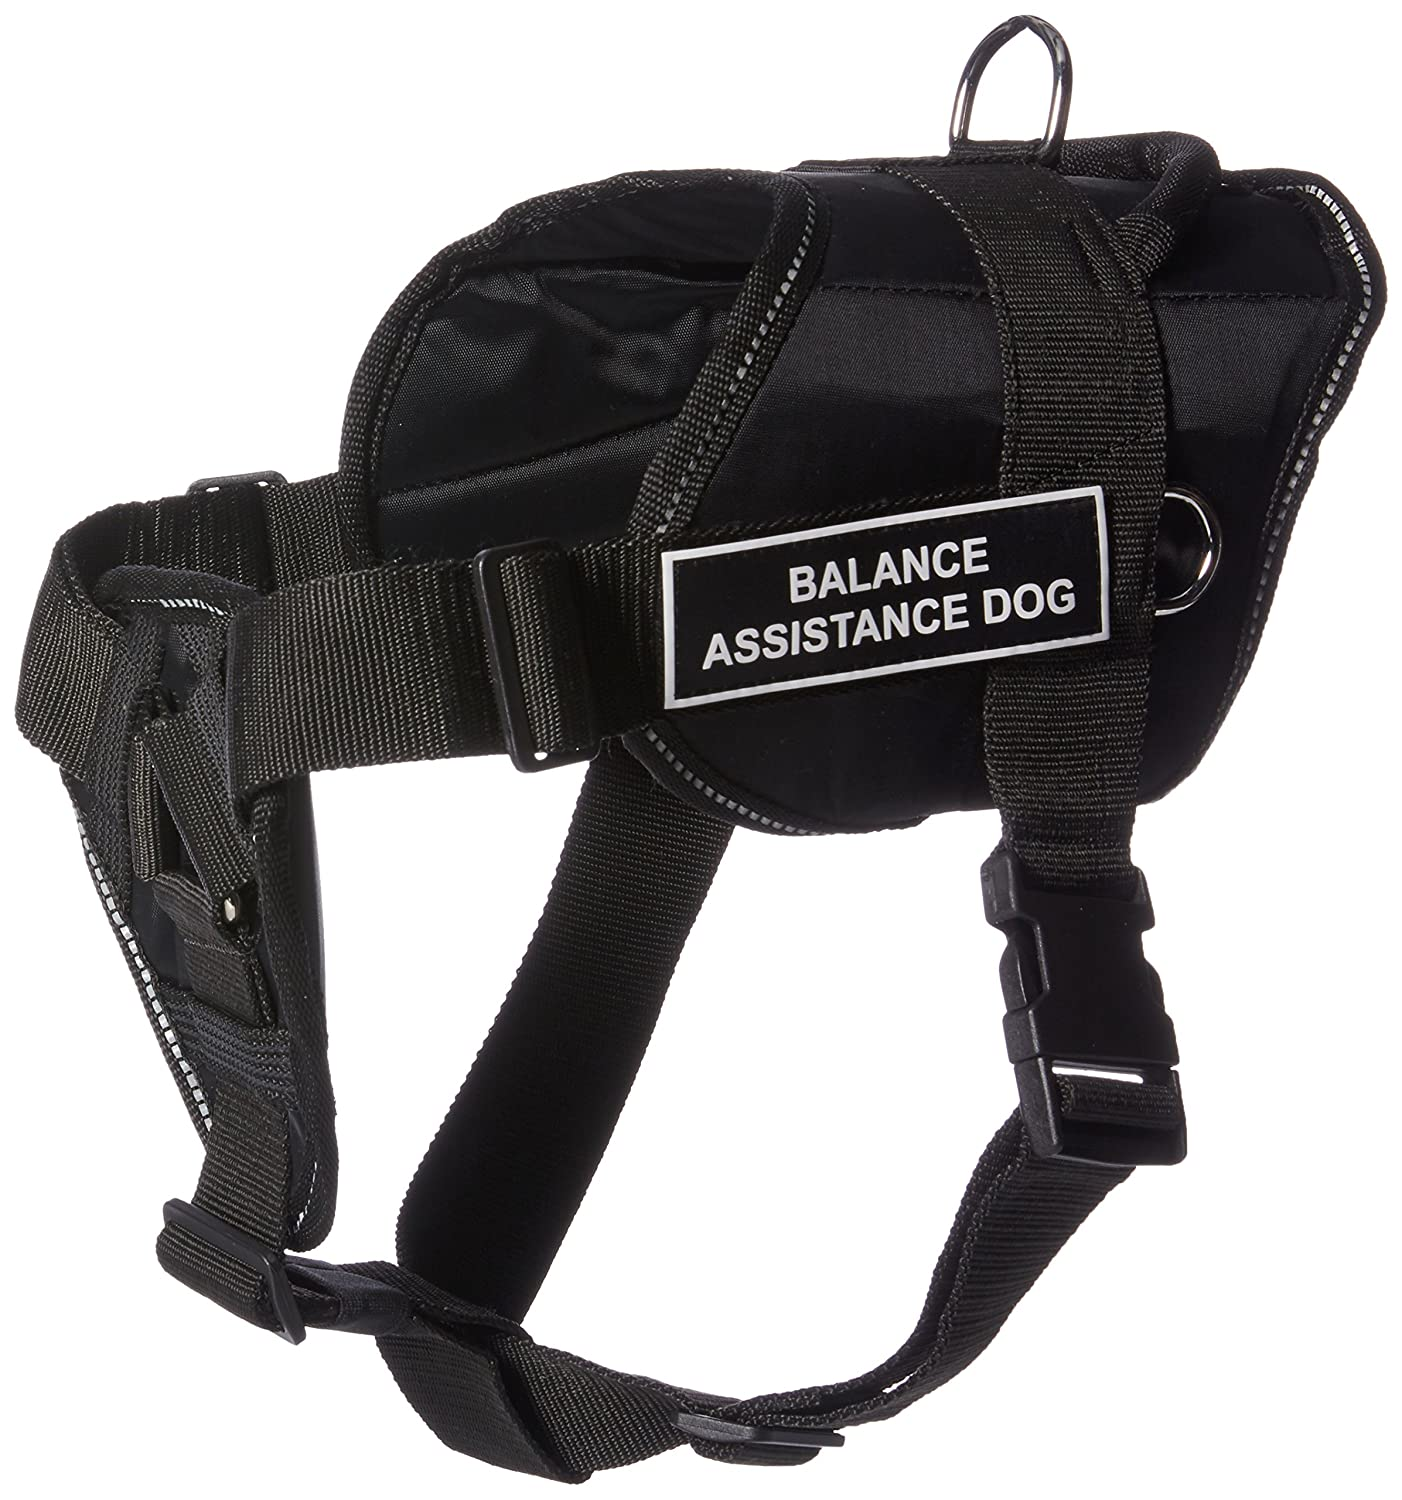 Dean & Tyler Fun Works Balance Assistance Dog Harness with Padded Chest Piece, Large, Fits Girth Size  32-Inch to 42-Inch, Black with Reflective Trim